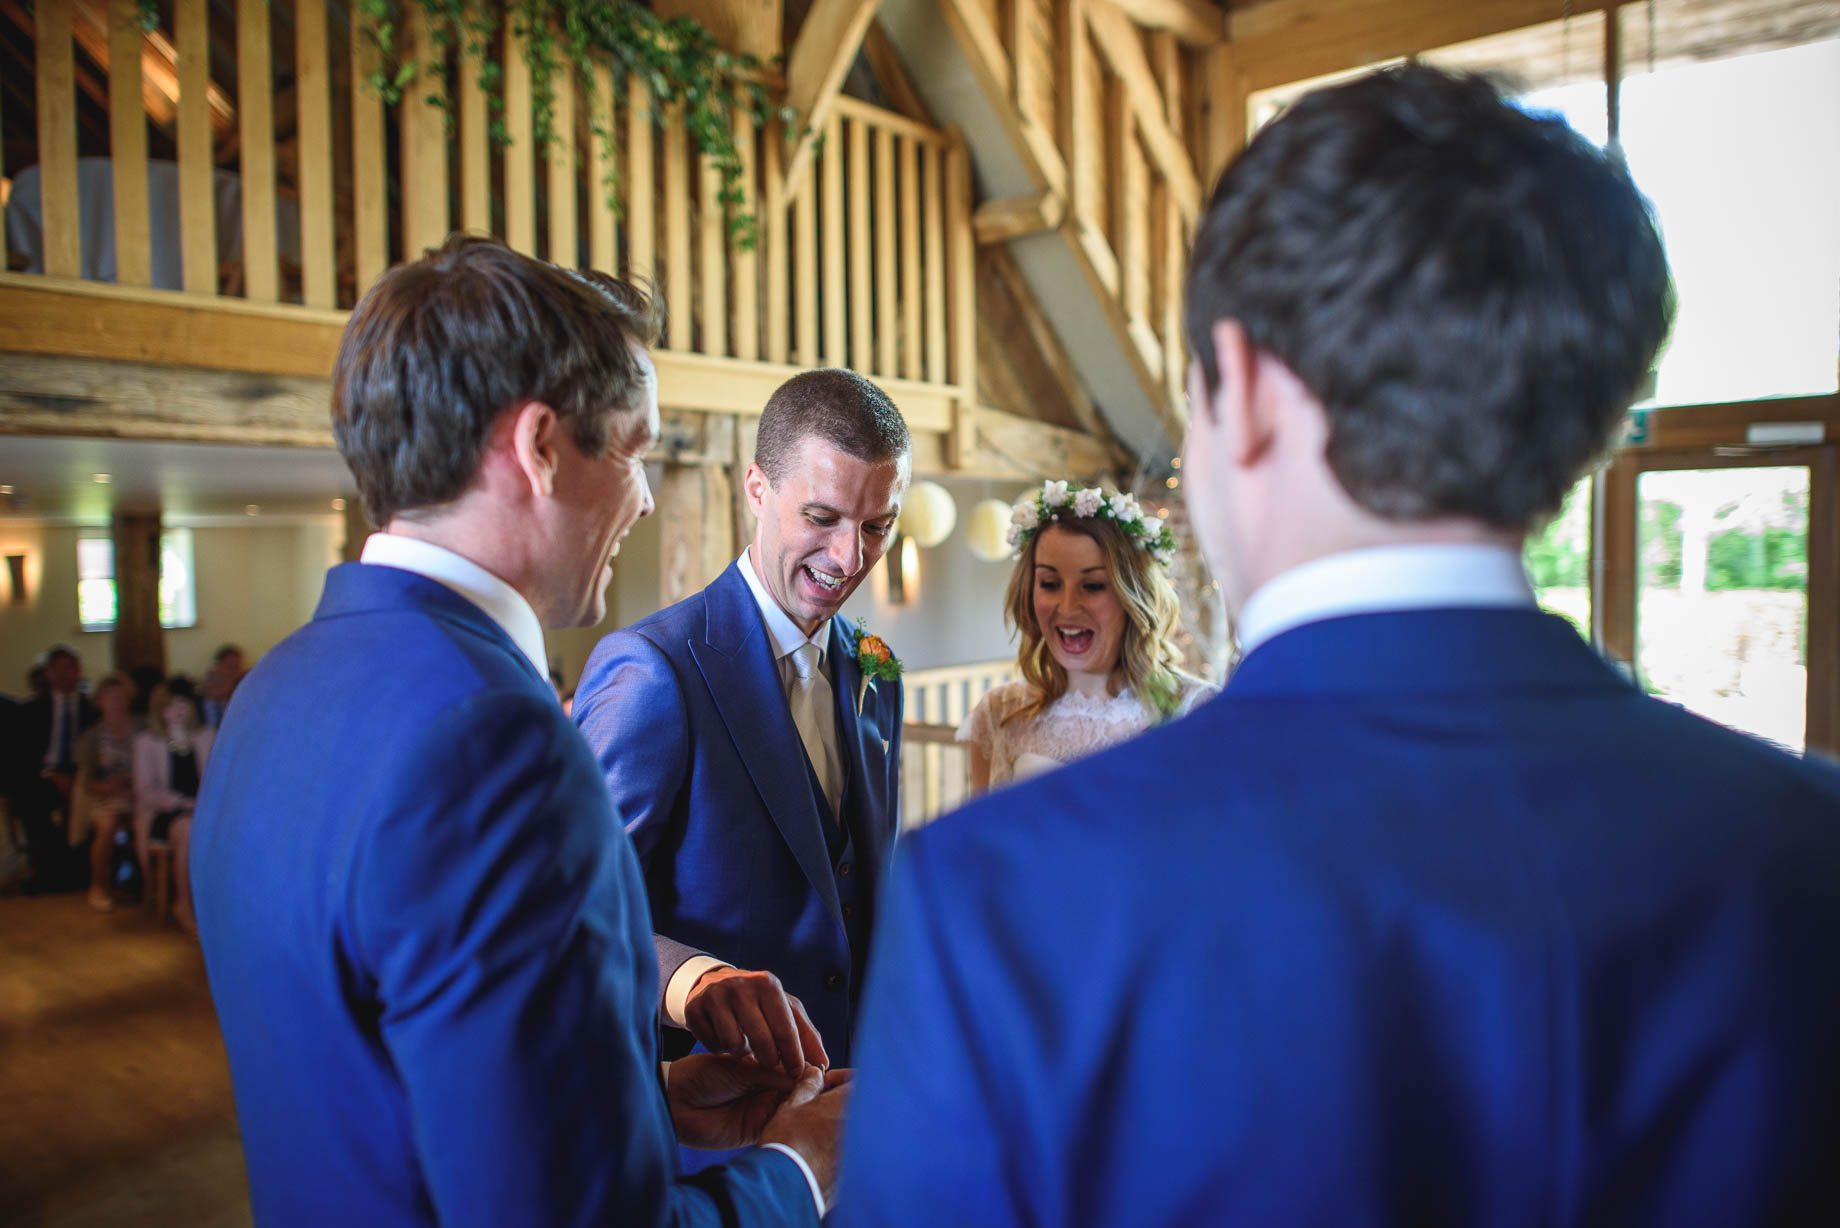 Bury Court Barn wedding photography by Guy Collier - Jo and Jamie (59 of 160)